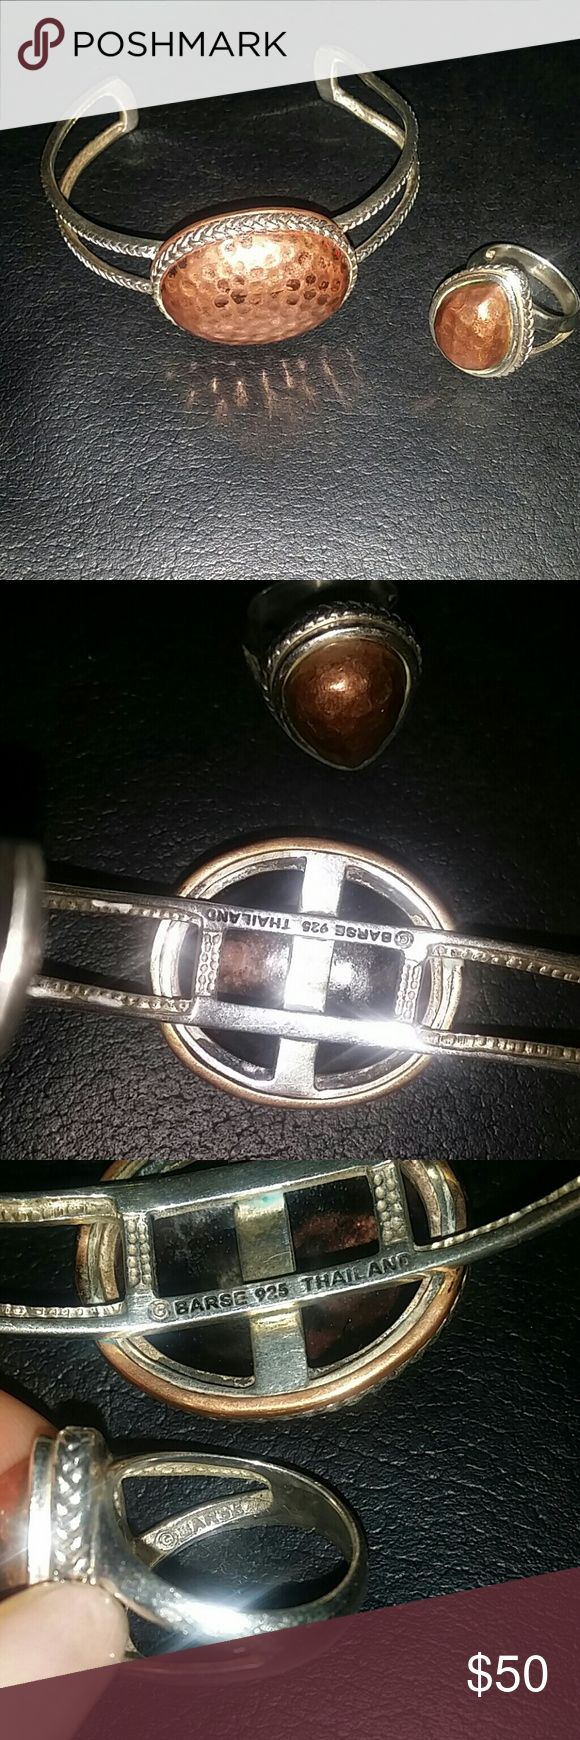 Barse 925 Silver bracelet and ring set. Silver and copper ring/bracelet. Ring sze 7.5 and bracelet one size. Good condition. Barse  Jewelry Bracelets